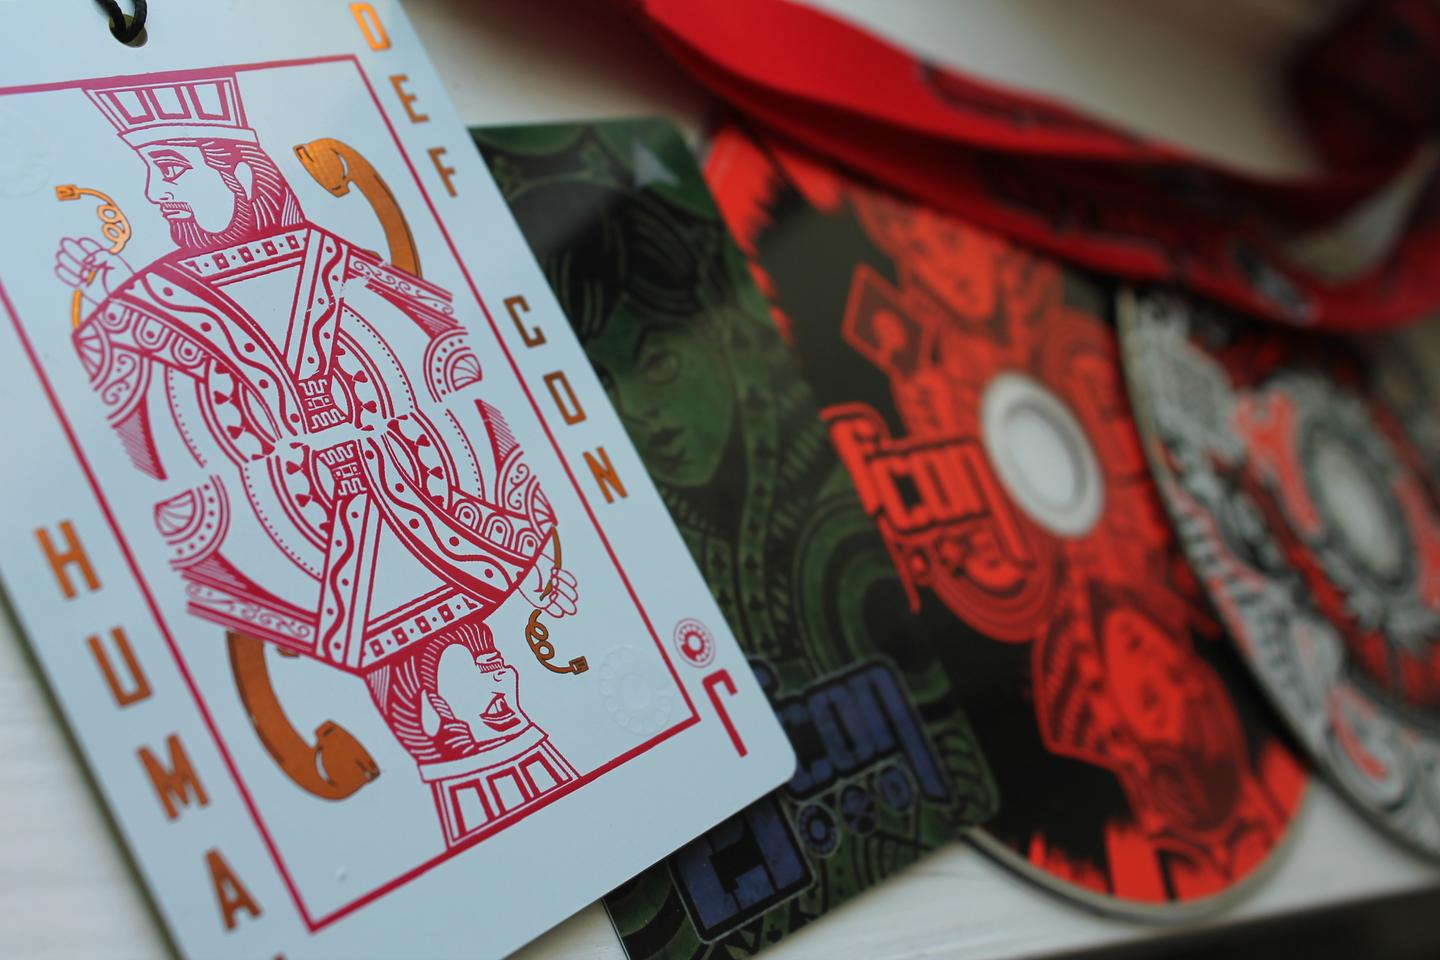 DefCon 21 swag: music, art, and competition are a part of the culture